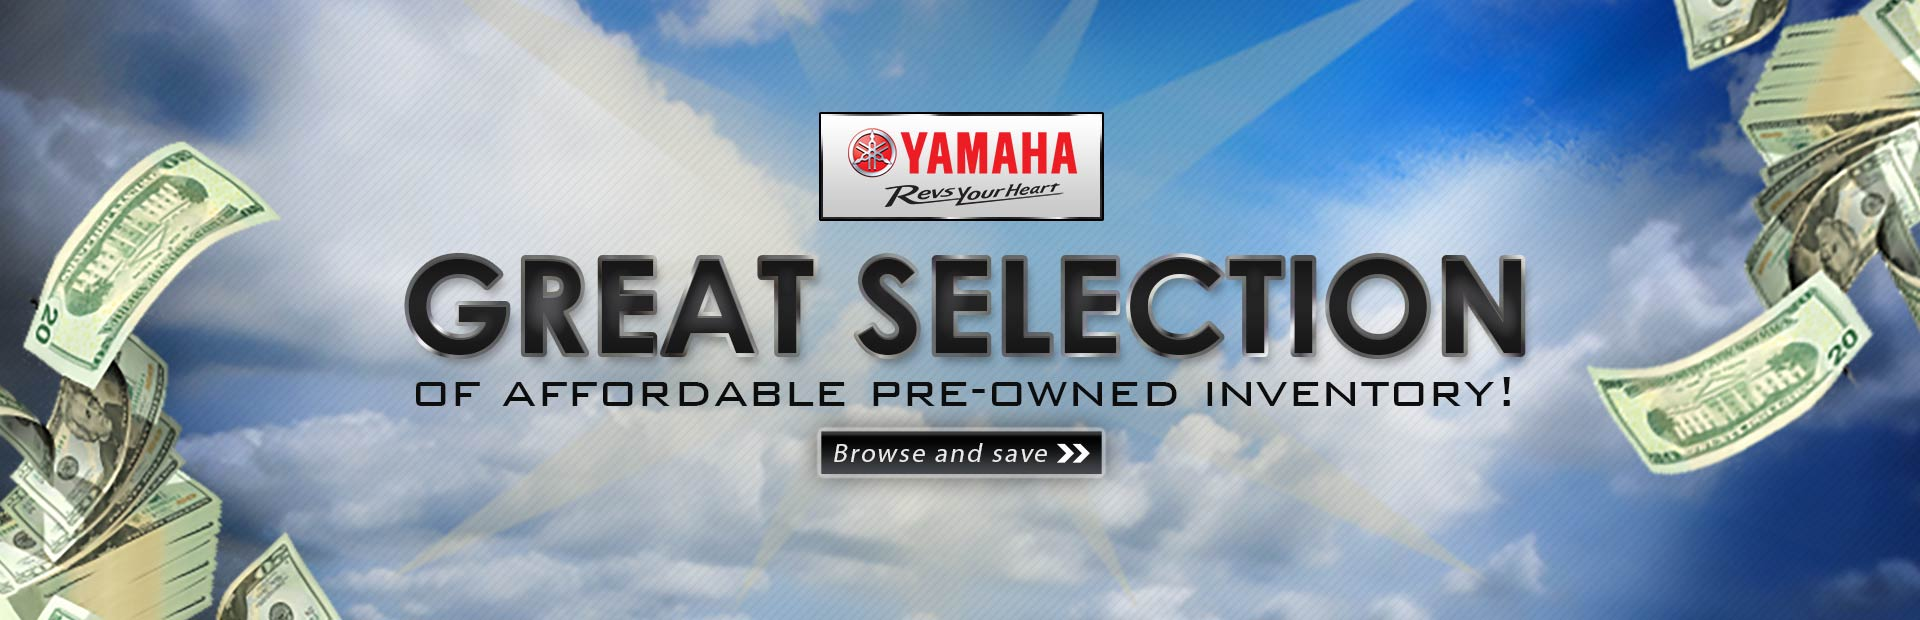 Great Pre-Owned Vehicle Selection: Click here to browse our affordable inventory!